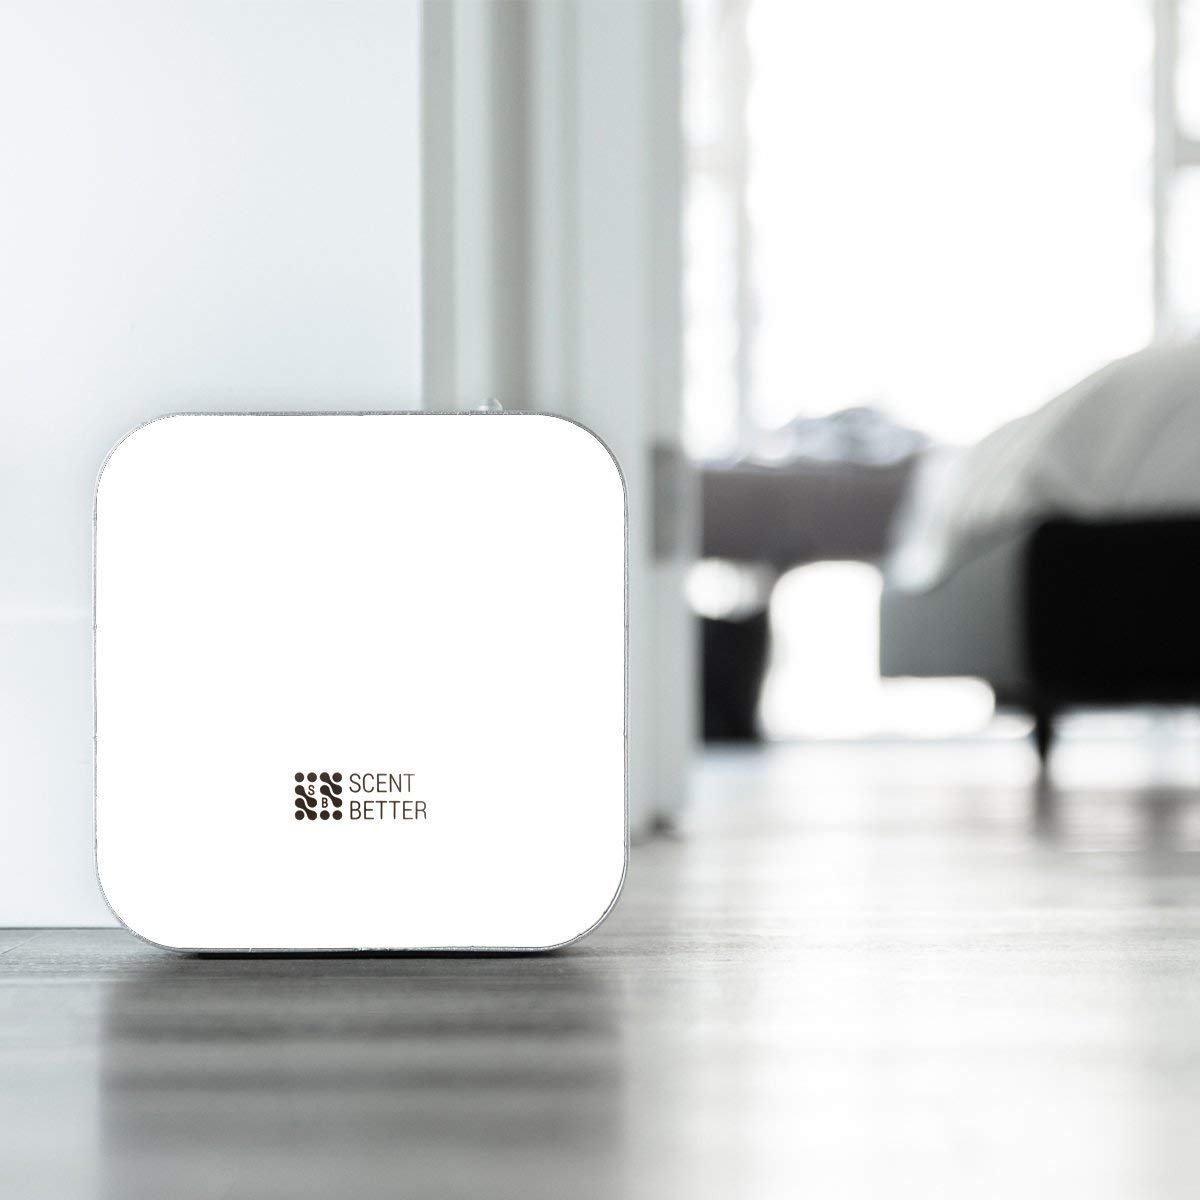 SB-1500 BT Scent Diffuser - White. by Scent Better (Image #3)